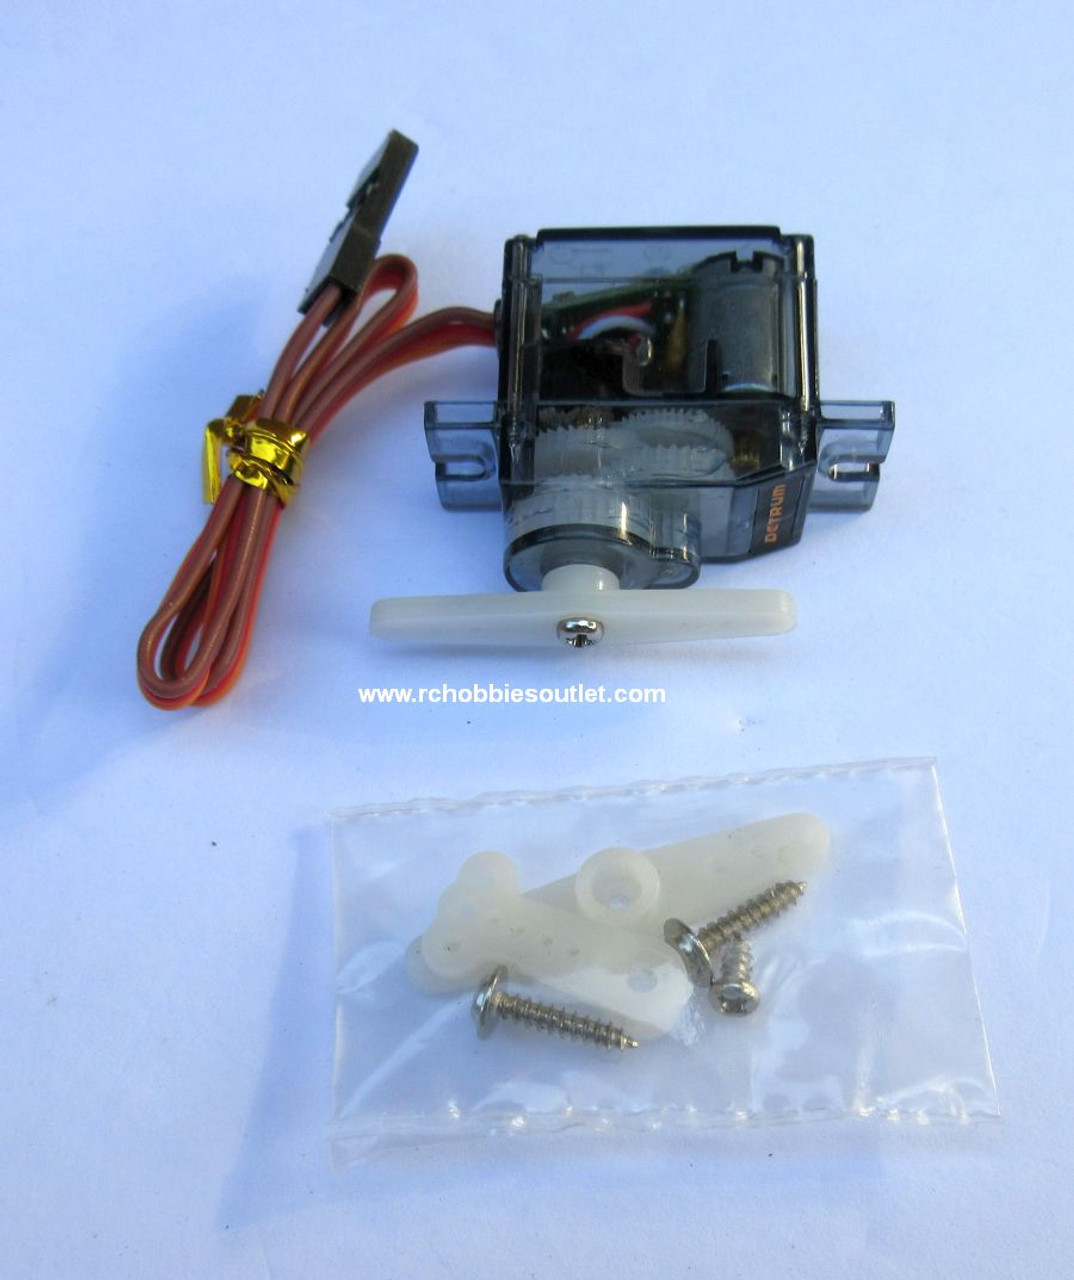 DY-1007 Servo 9 g for RC Airplanes